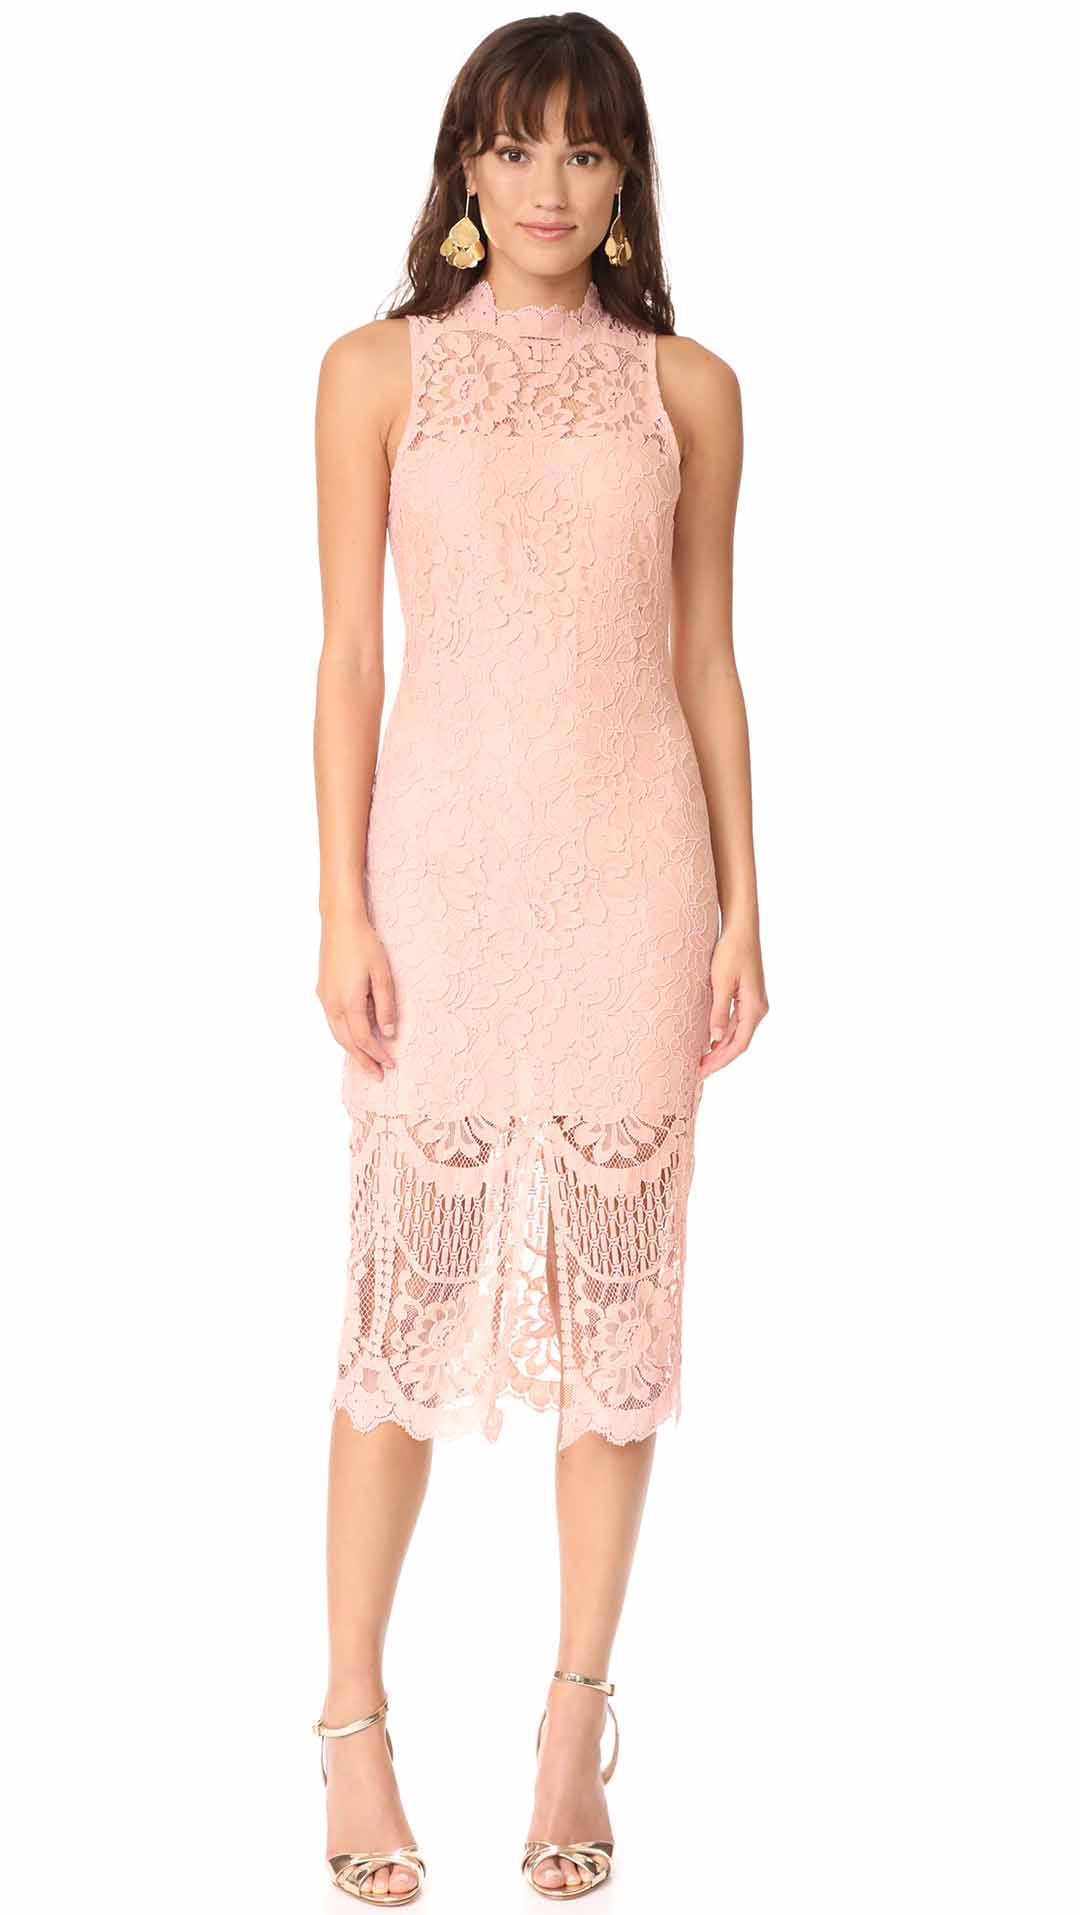 Trendy lace bodycon dresses for summer wedding guests for Best dresses for summer wedding